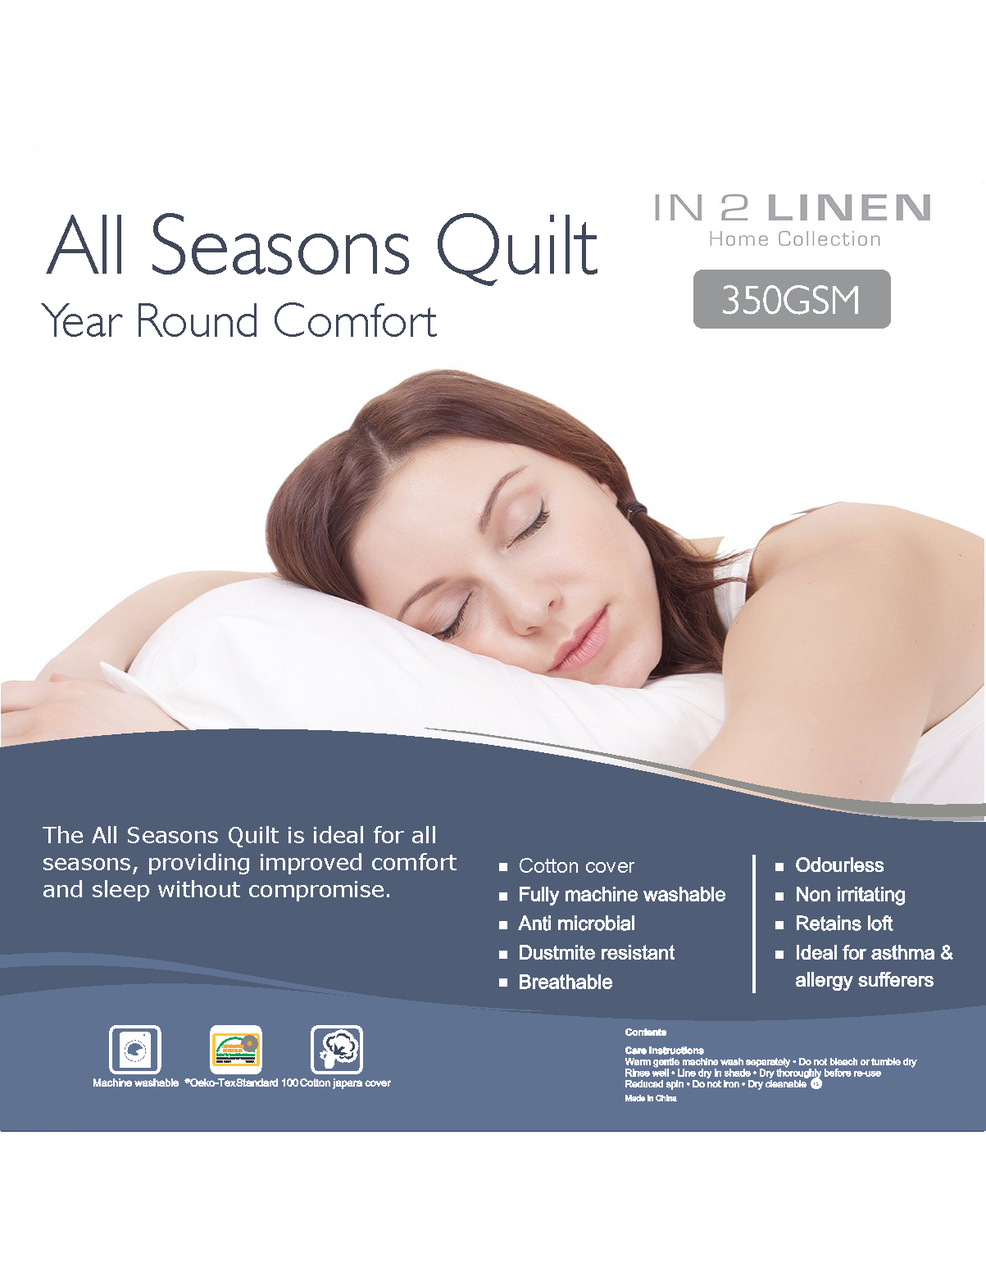 In 2 Linen All Seasons Double Bed Quilt | 350GSM